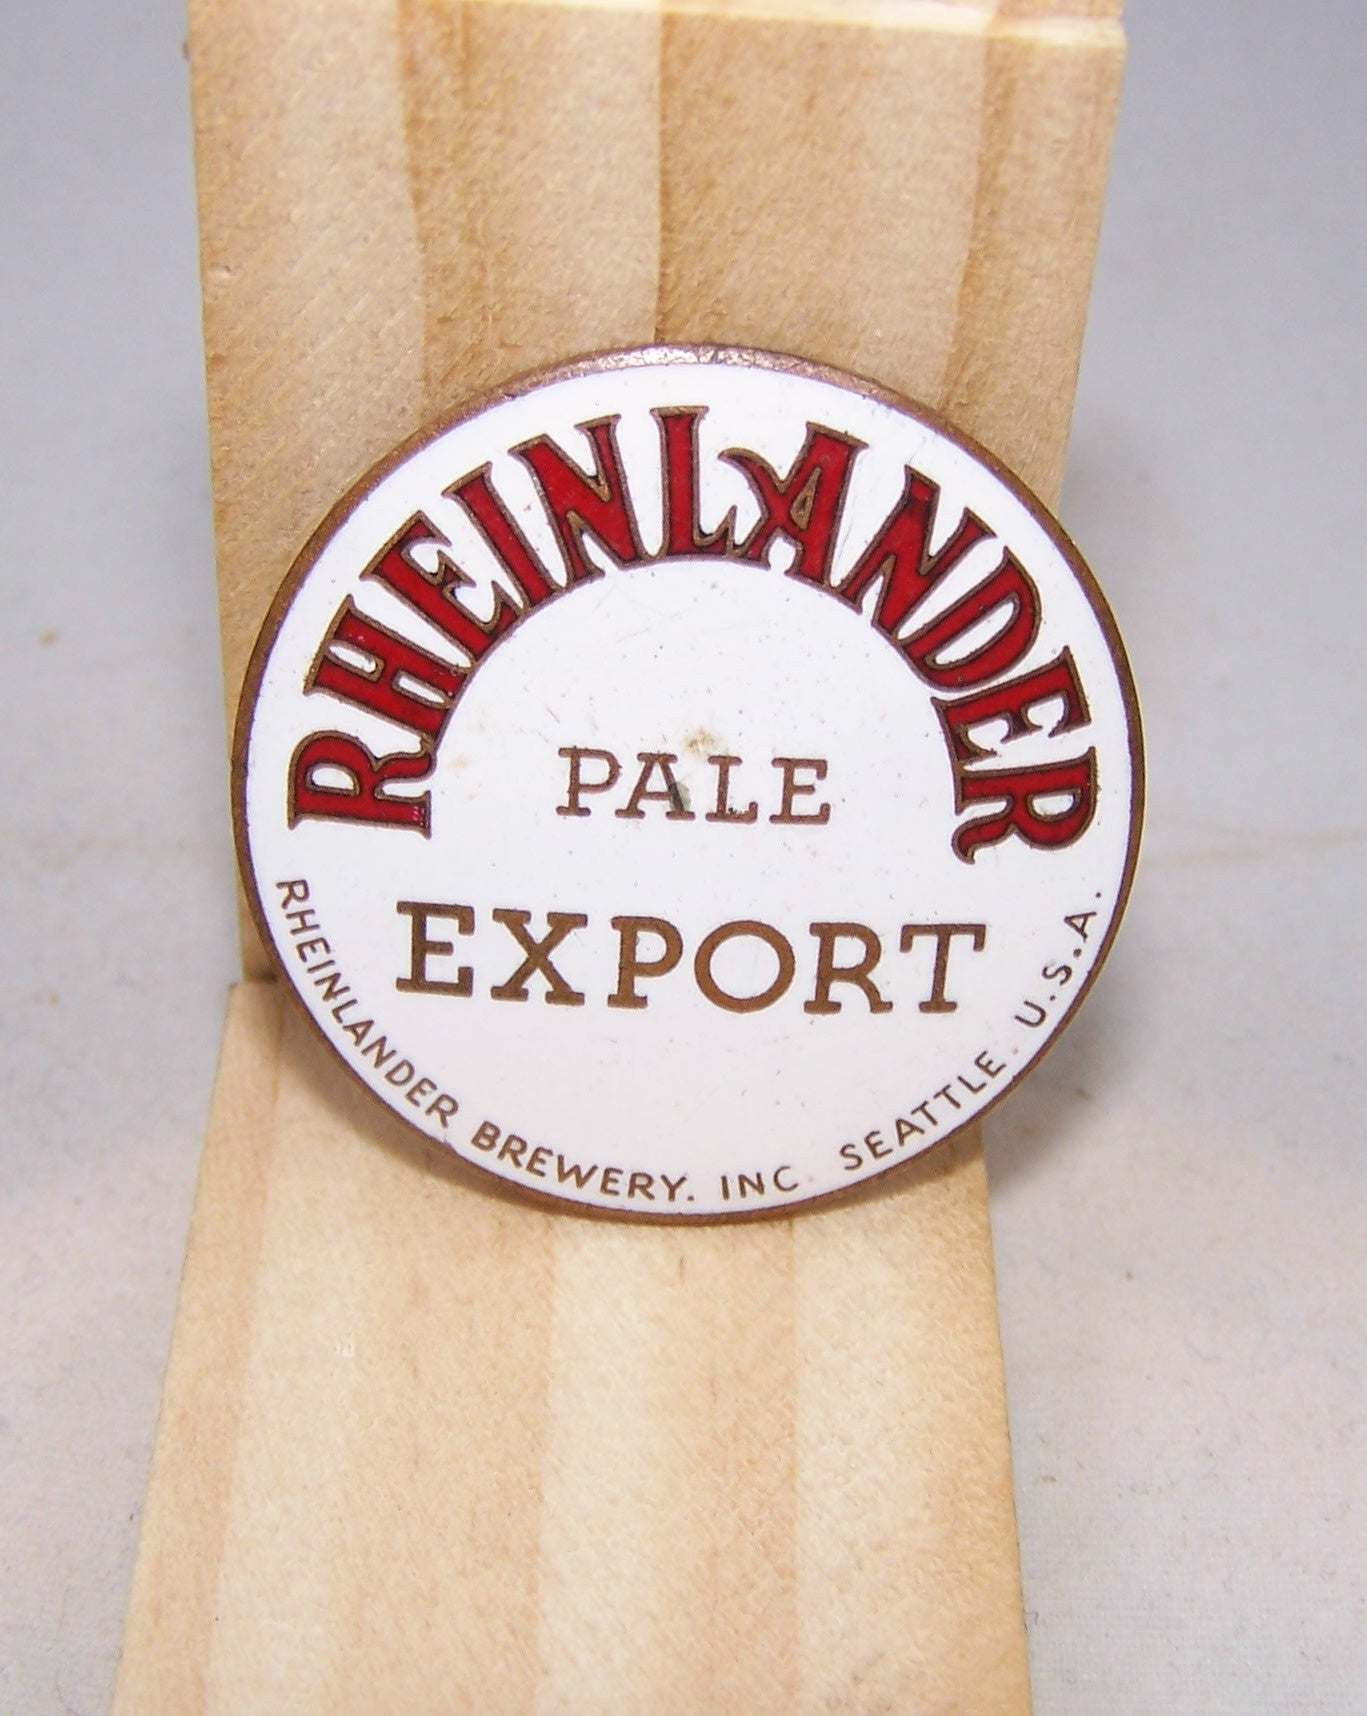 Rheinlander Pale Export, Ball Knob Insert, Tap Marker page 158-1819, Grade 9 Sold on 02/12/16